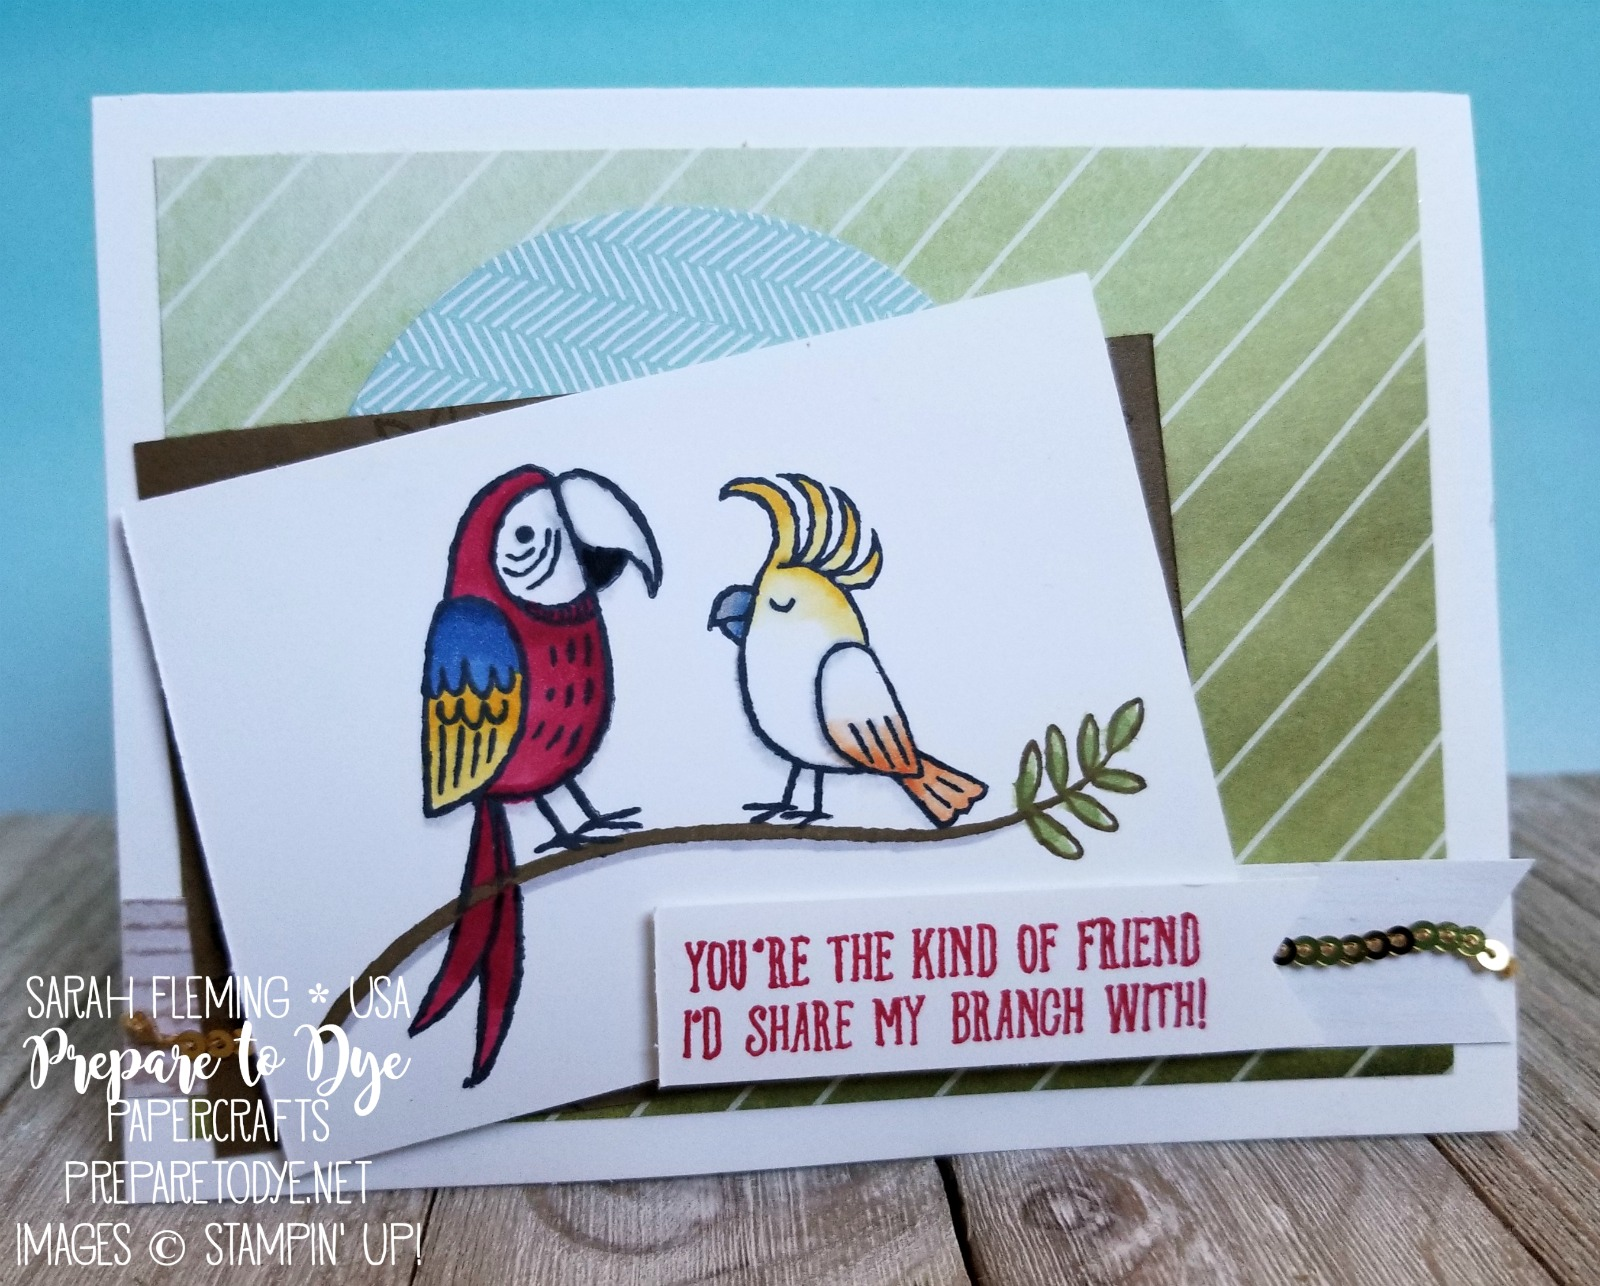 Stampin' Up! Bird Banter - handmade friend card - Delightful Daisy & Coffee Break paper - Sarah Fleming - Prepare to Dye Papercrafts #GDP120